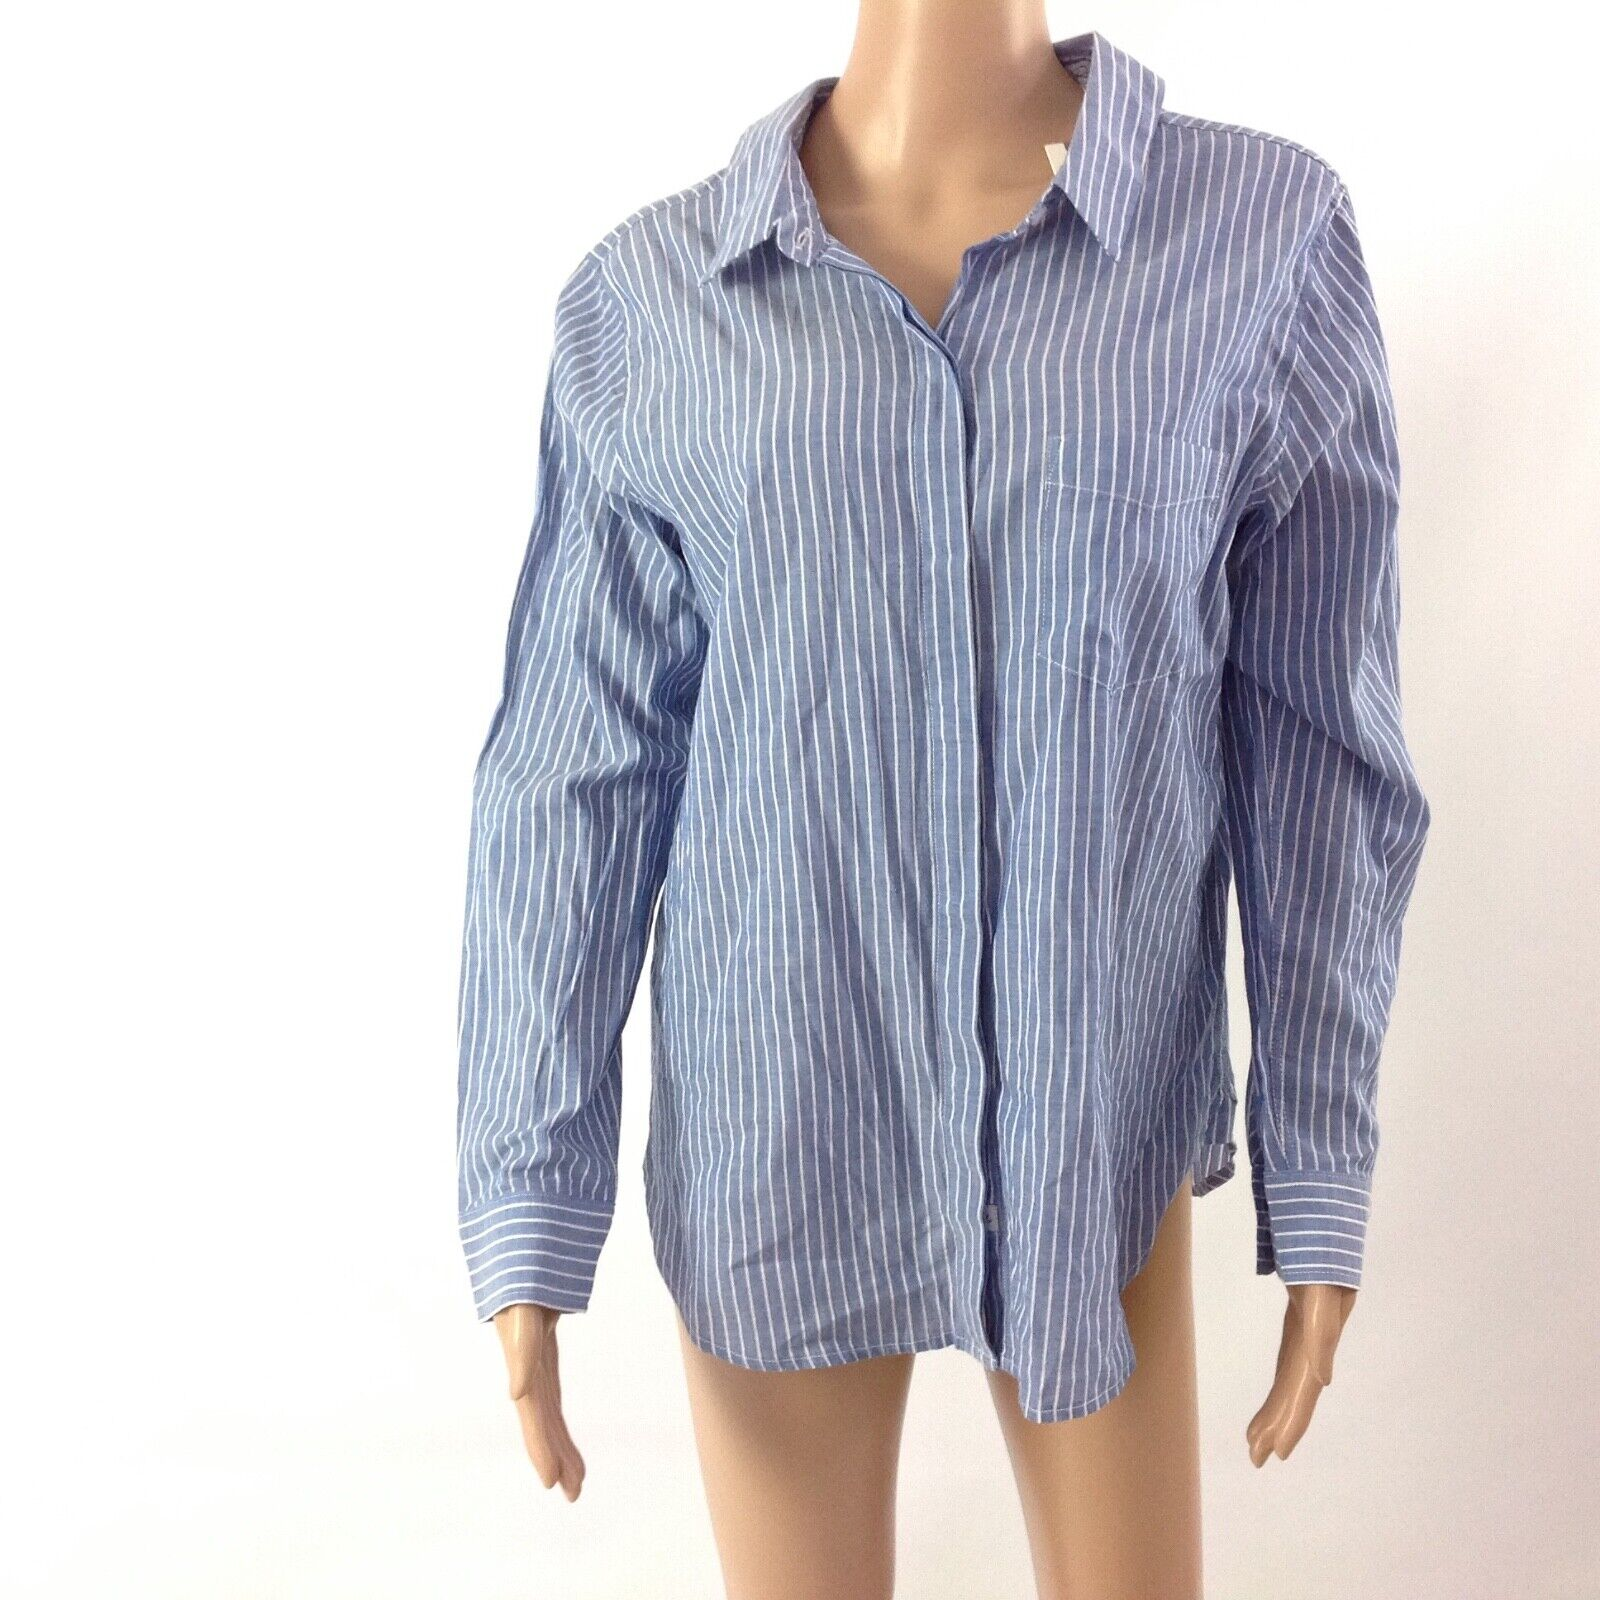 Anthropologie Rails damen Mimi Striped Shirt Blau Weiß Größe M Tie Back New